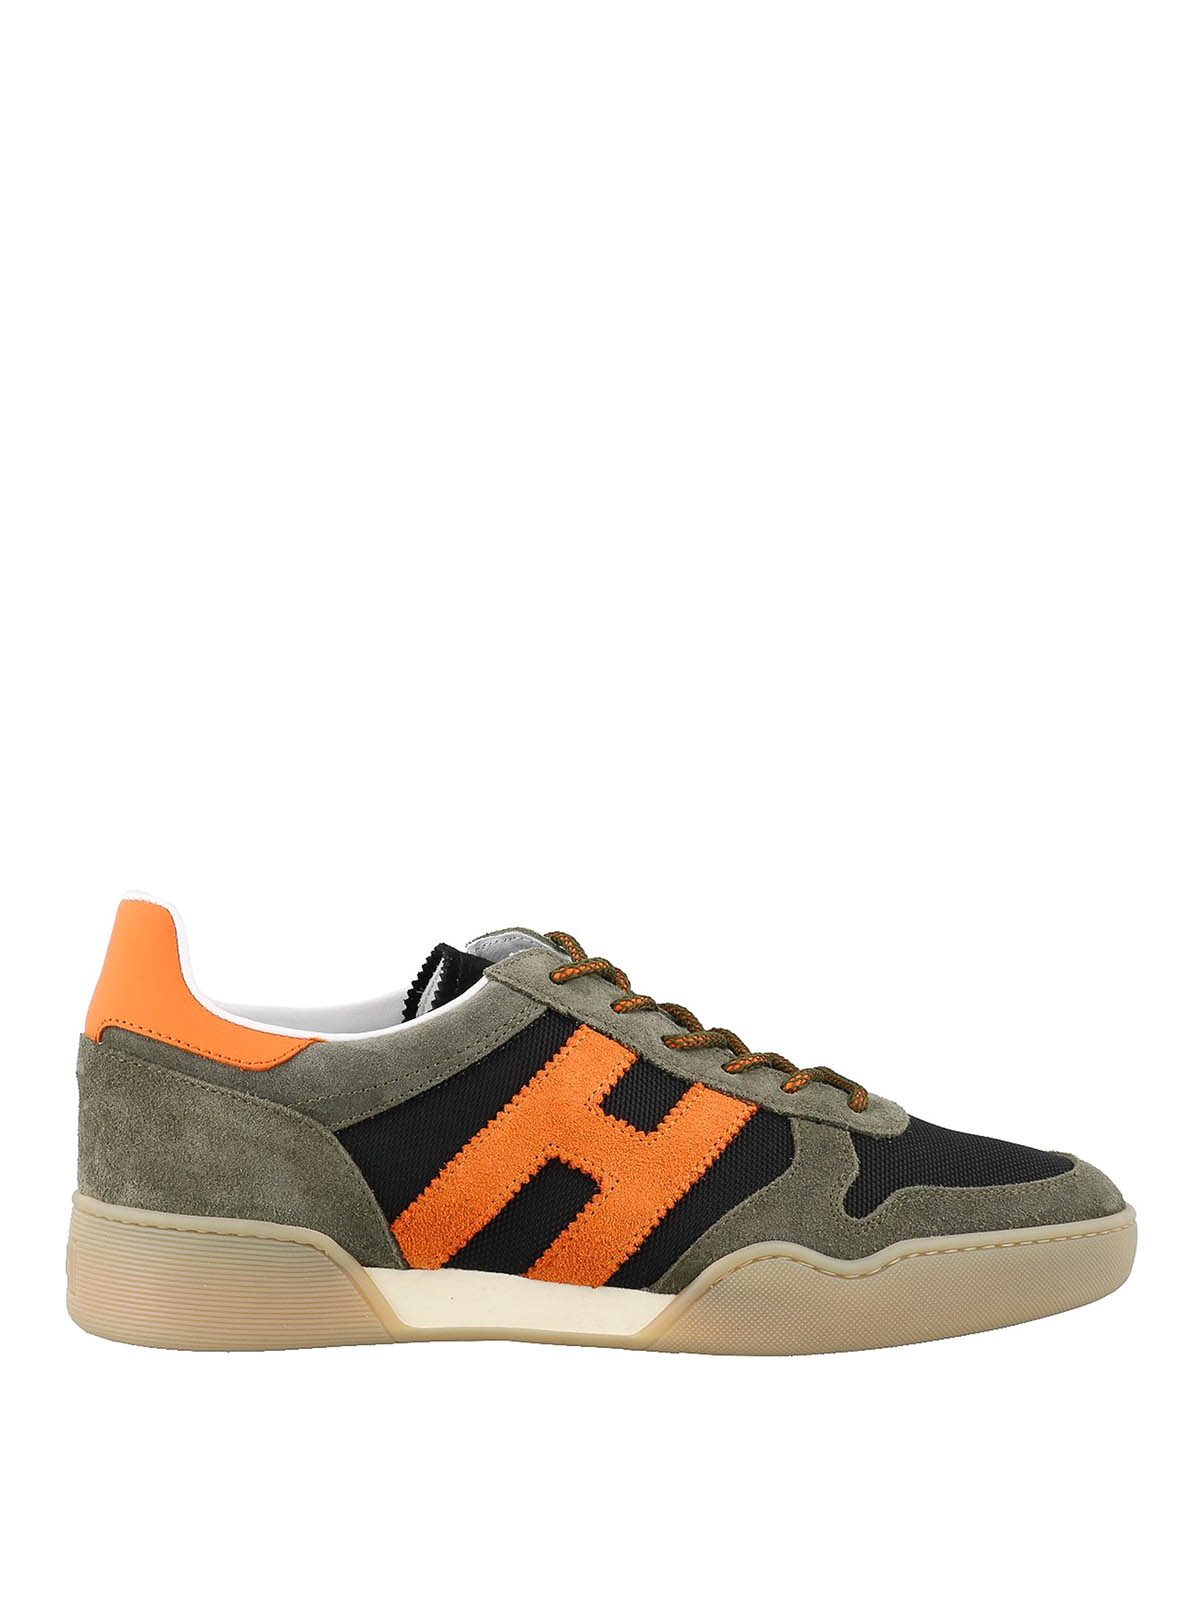 Hogan Sports H357 MULTICOLOUR SUEDE AND FABRIC SNEAKERS